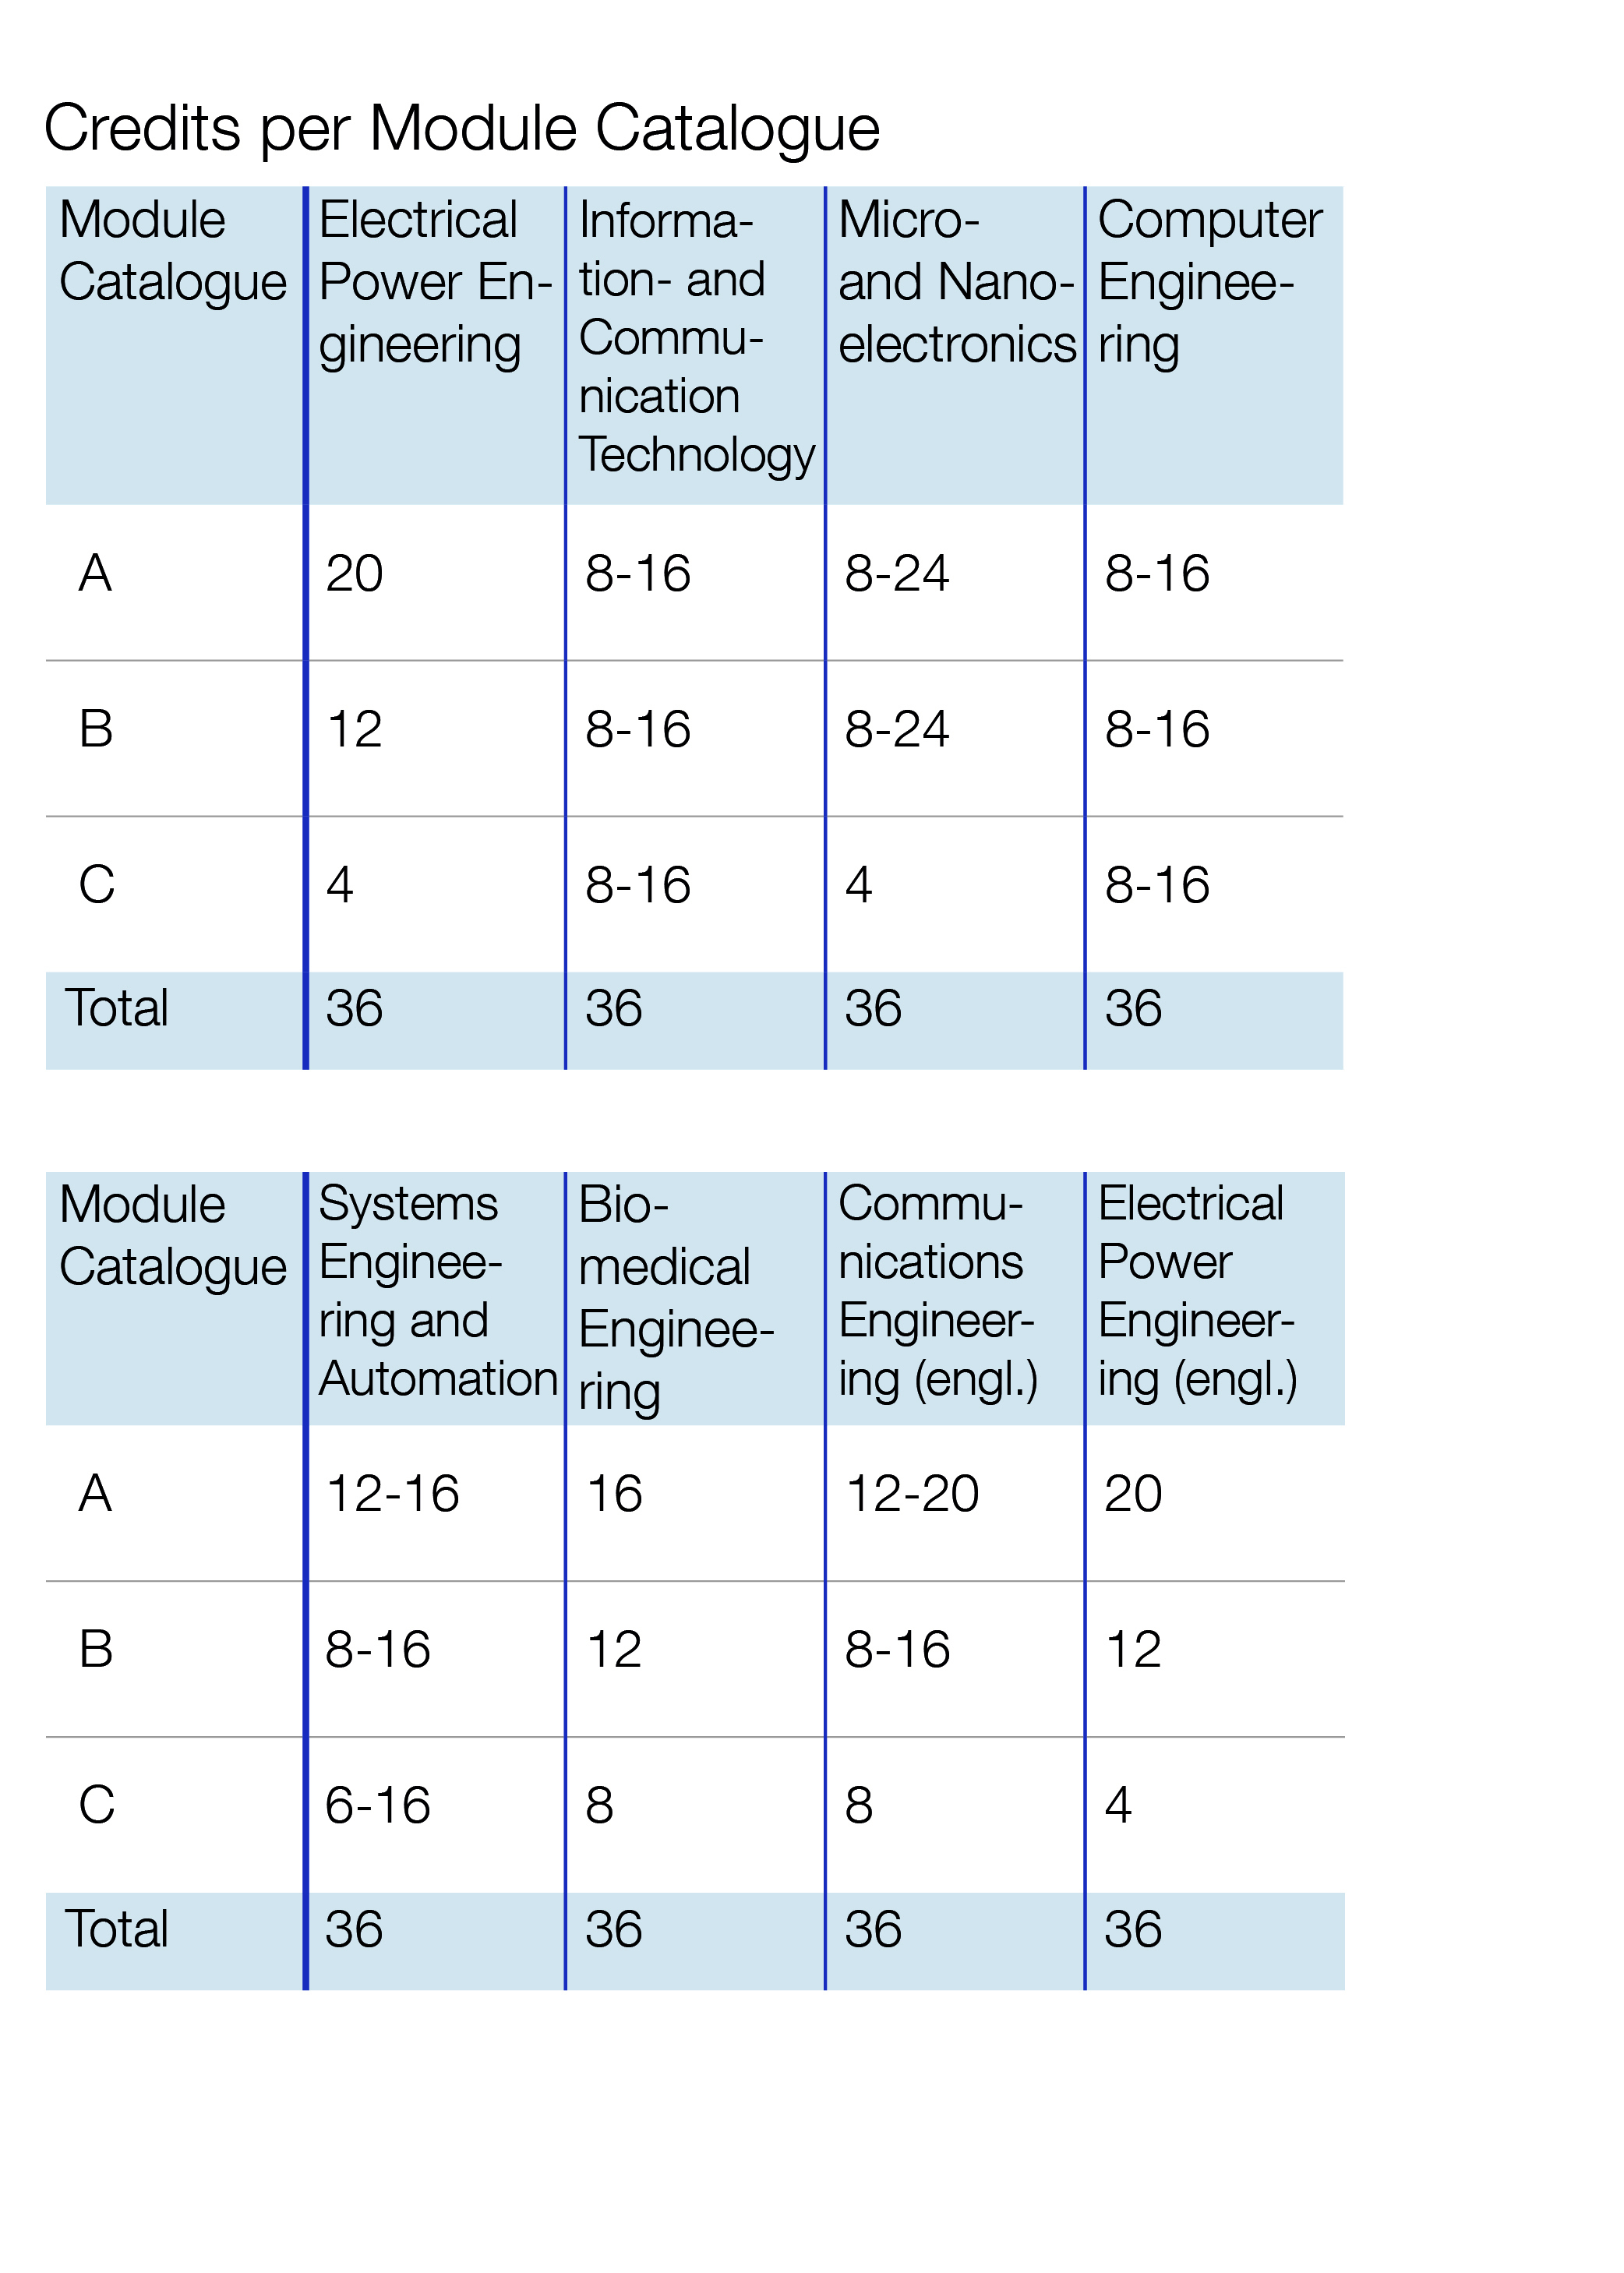 Electrical Engineering and Information Technology: Credits per Module Catalogue